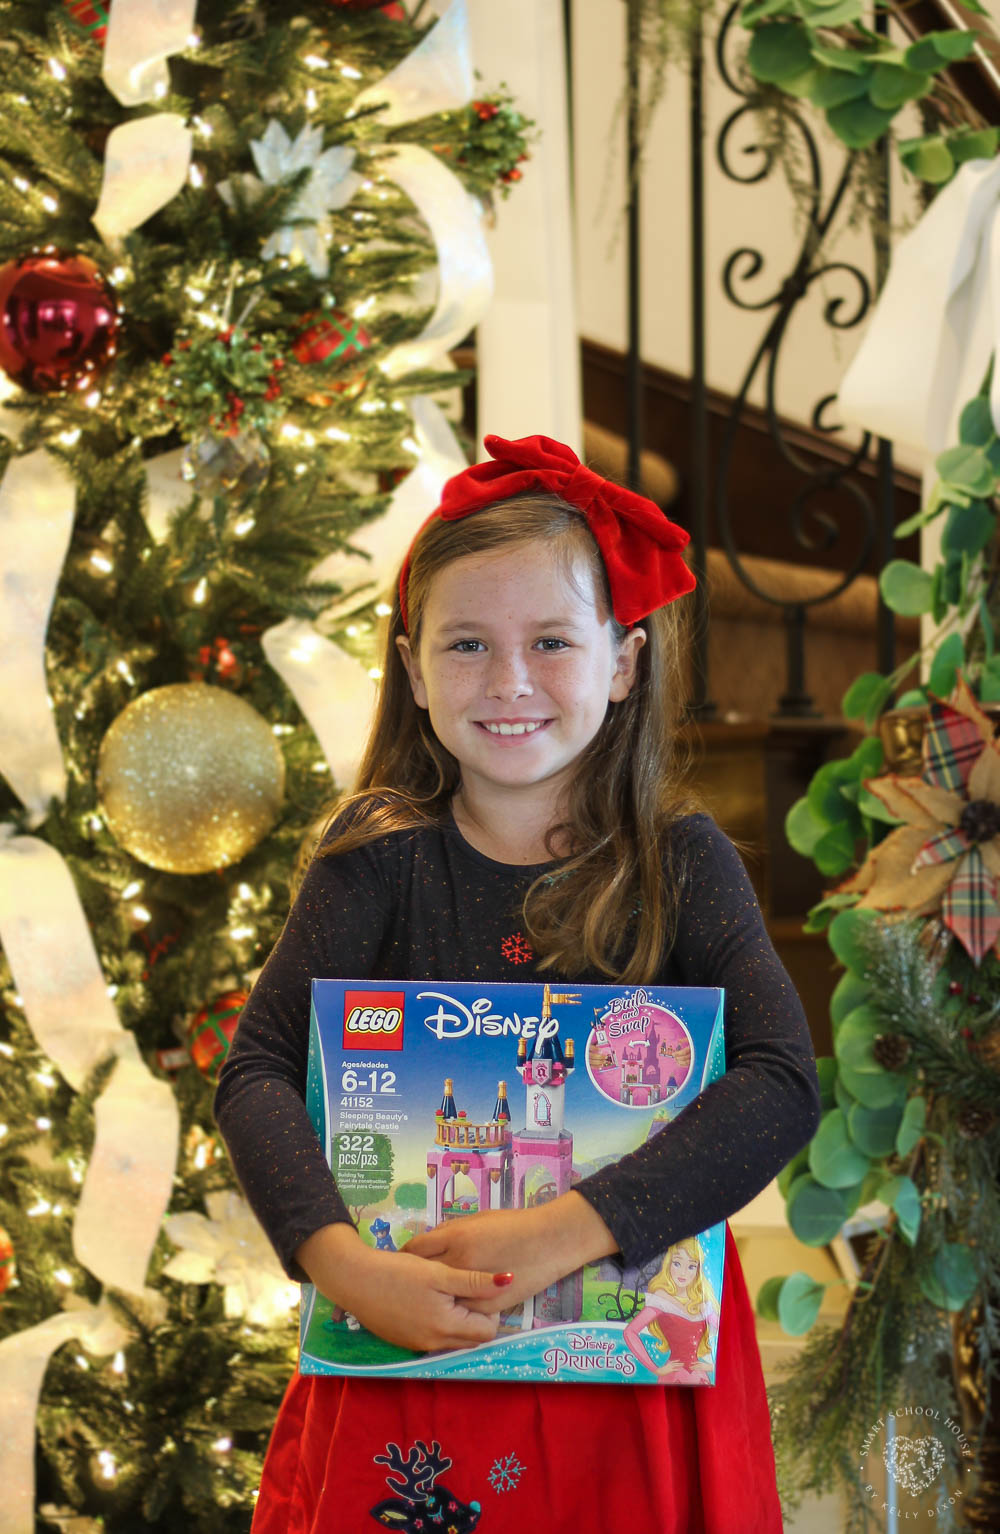 Disney Princess LEGO set for Christmas #KohlsToys #KohlsFinds #AD